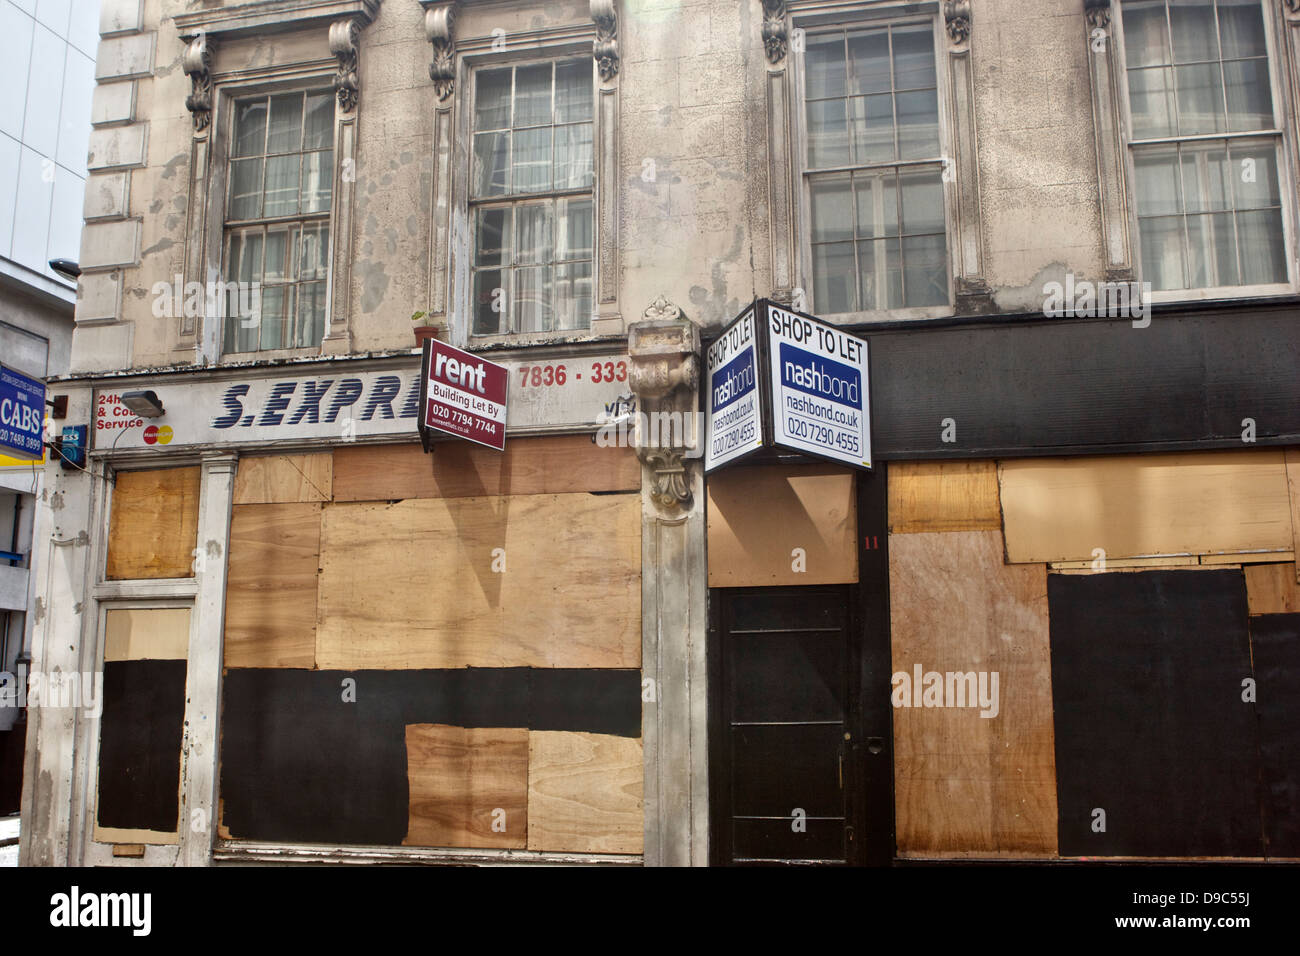 Deserted and boarded up shops in London's Bloomsbury District on Drury Lane - Stock Image